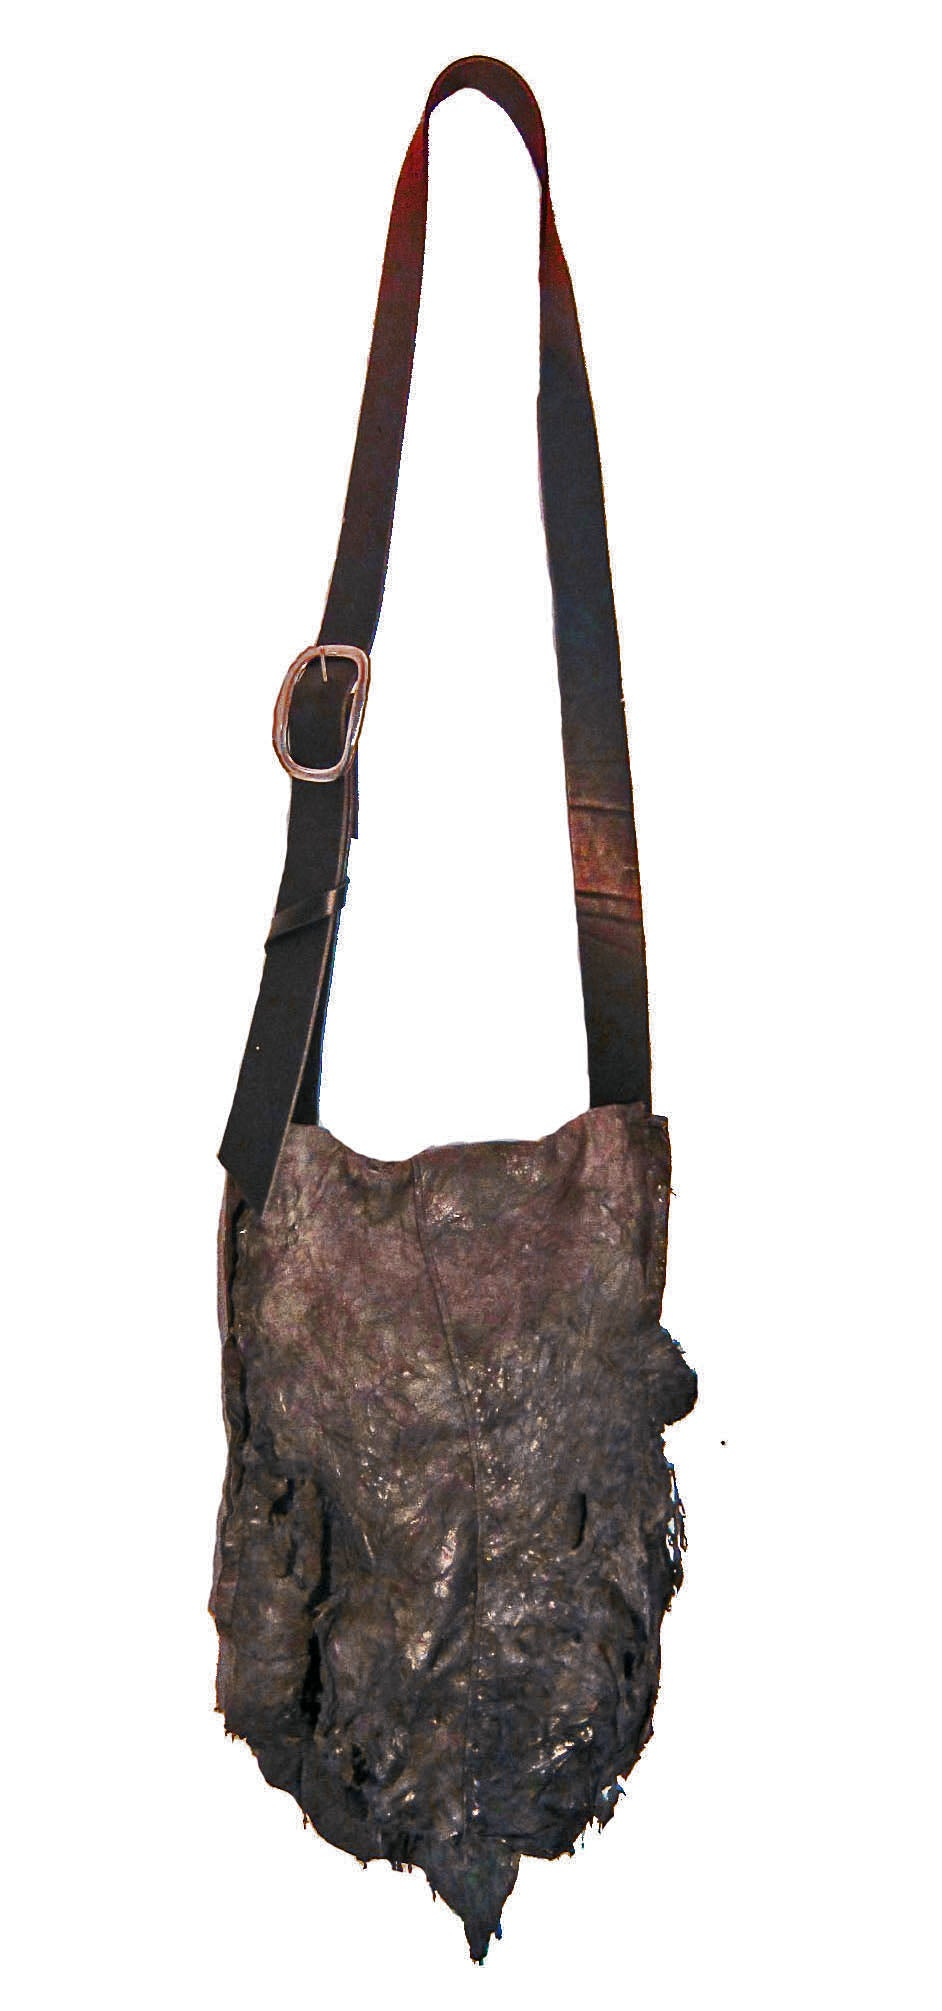 Image of the Kashmir Bag